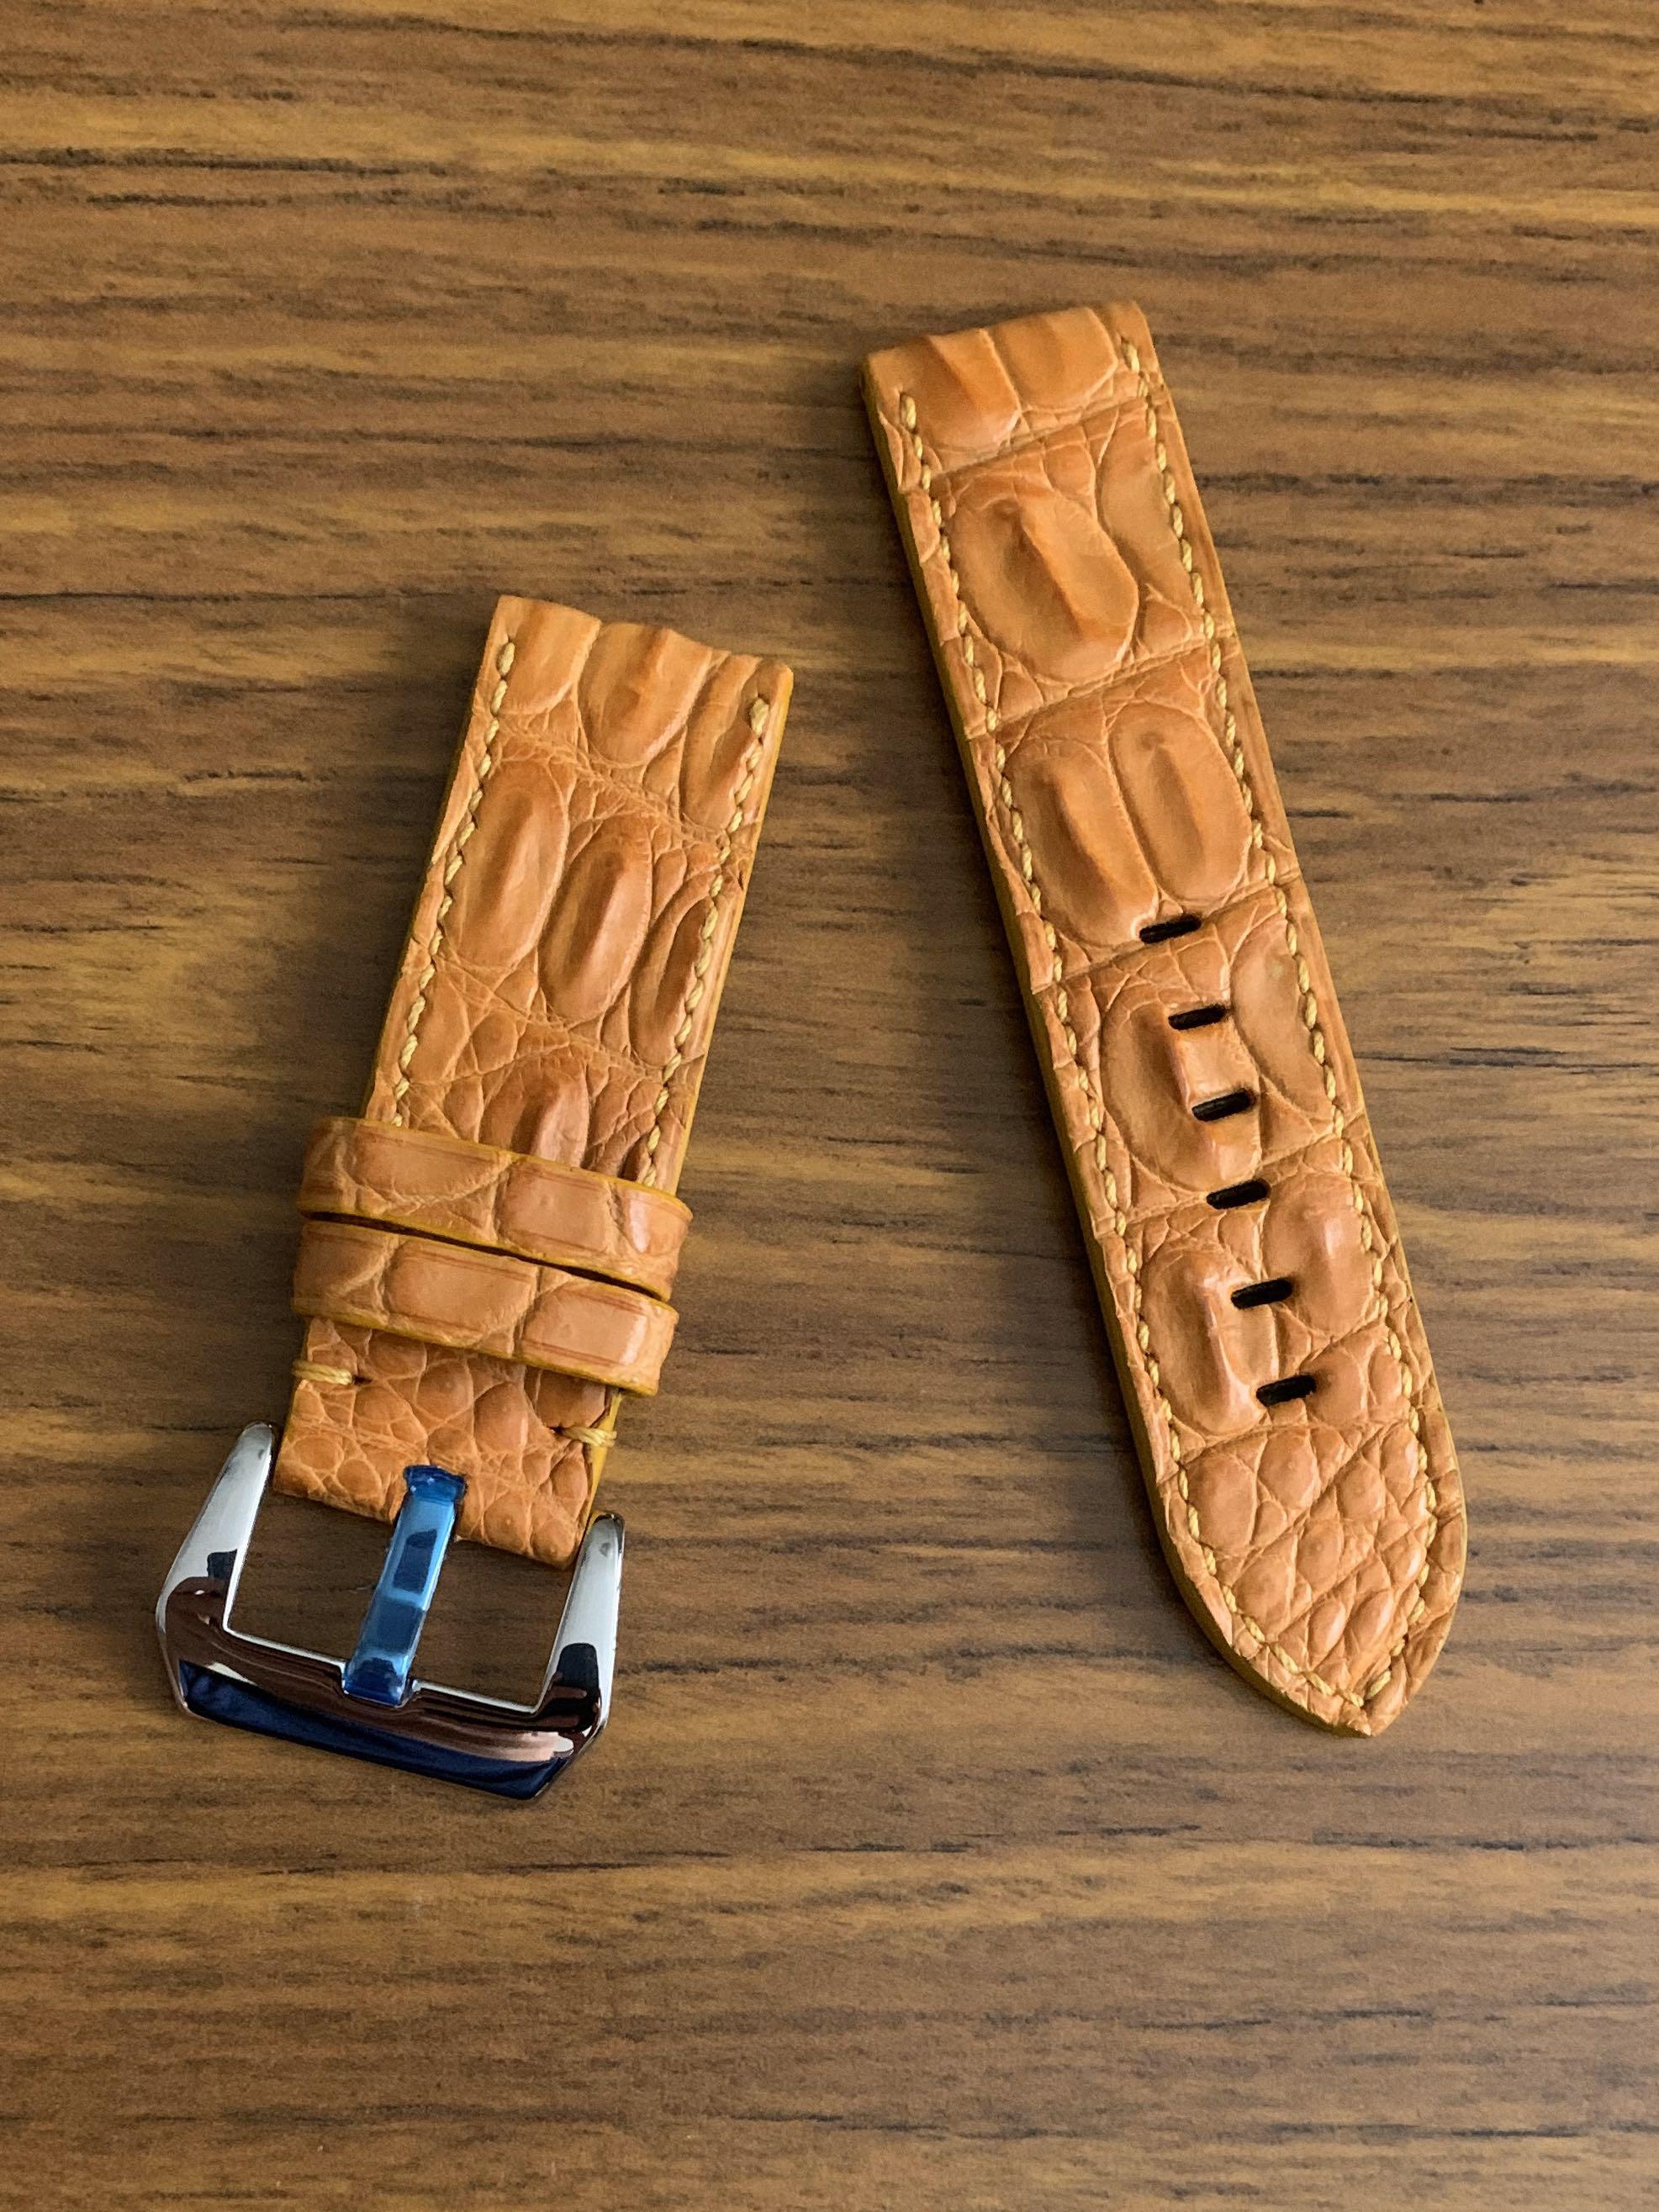 24mm/24mm Authentic Half Hornback Sunrise Tanned Brown Crocodile 🐊 Alligator Leather Watch Strap - (very unique, only one piece, once sold no more 👍🏻😊) (Standard length: L-120mm, S-75mm)